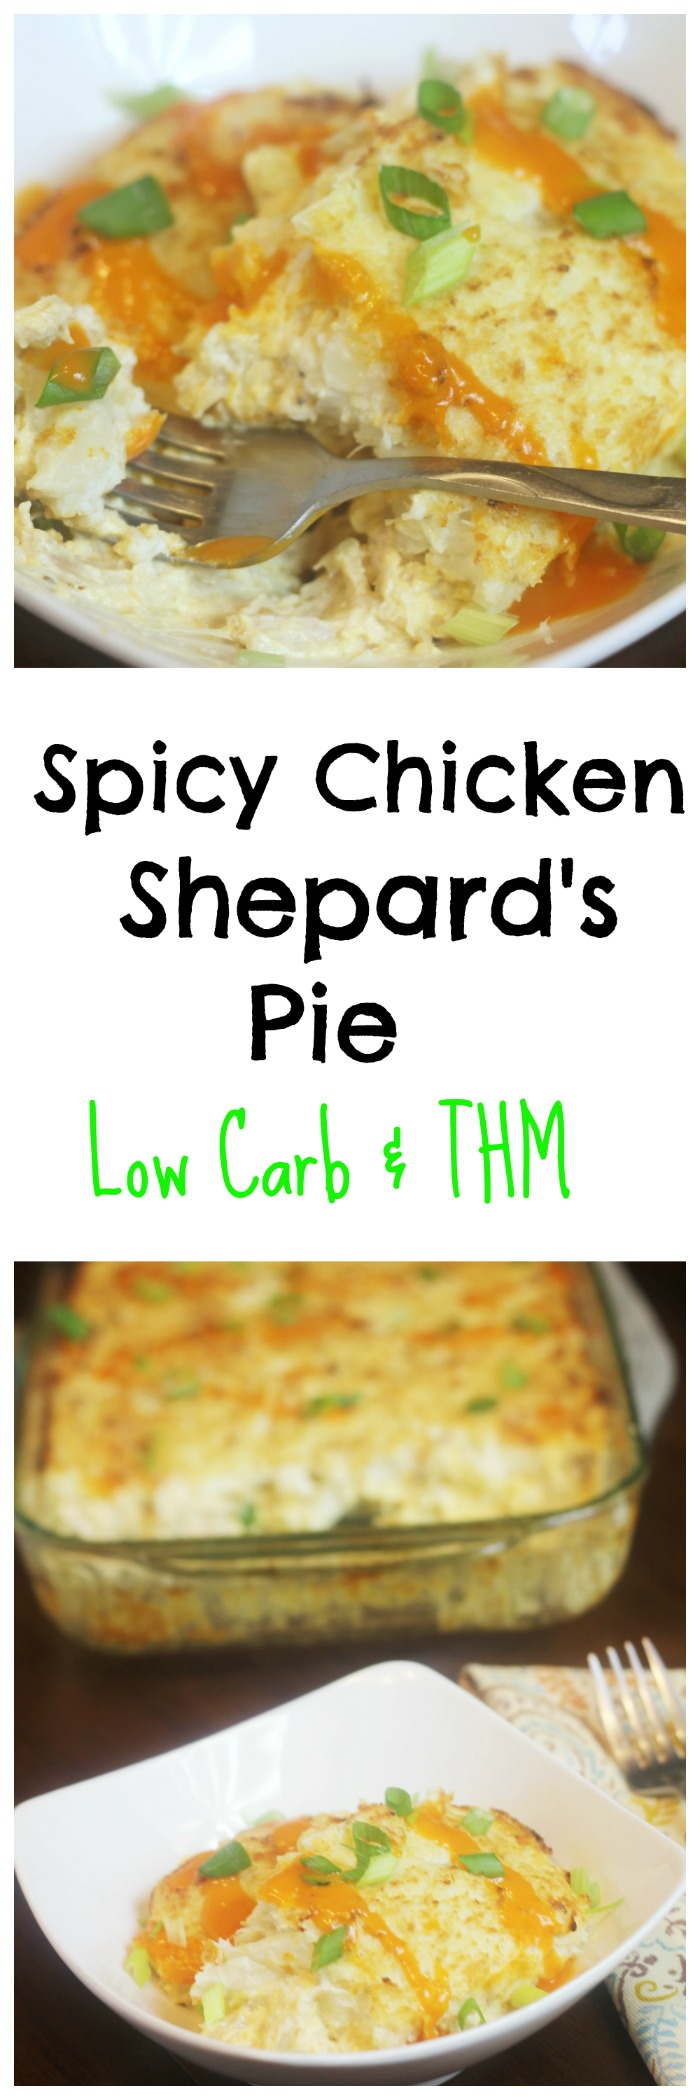 Spicy Chicken Shepard S Pie Low Carb Thm My Table Of